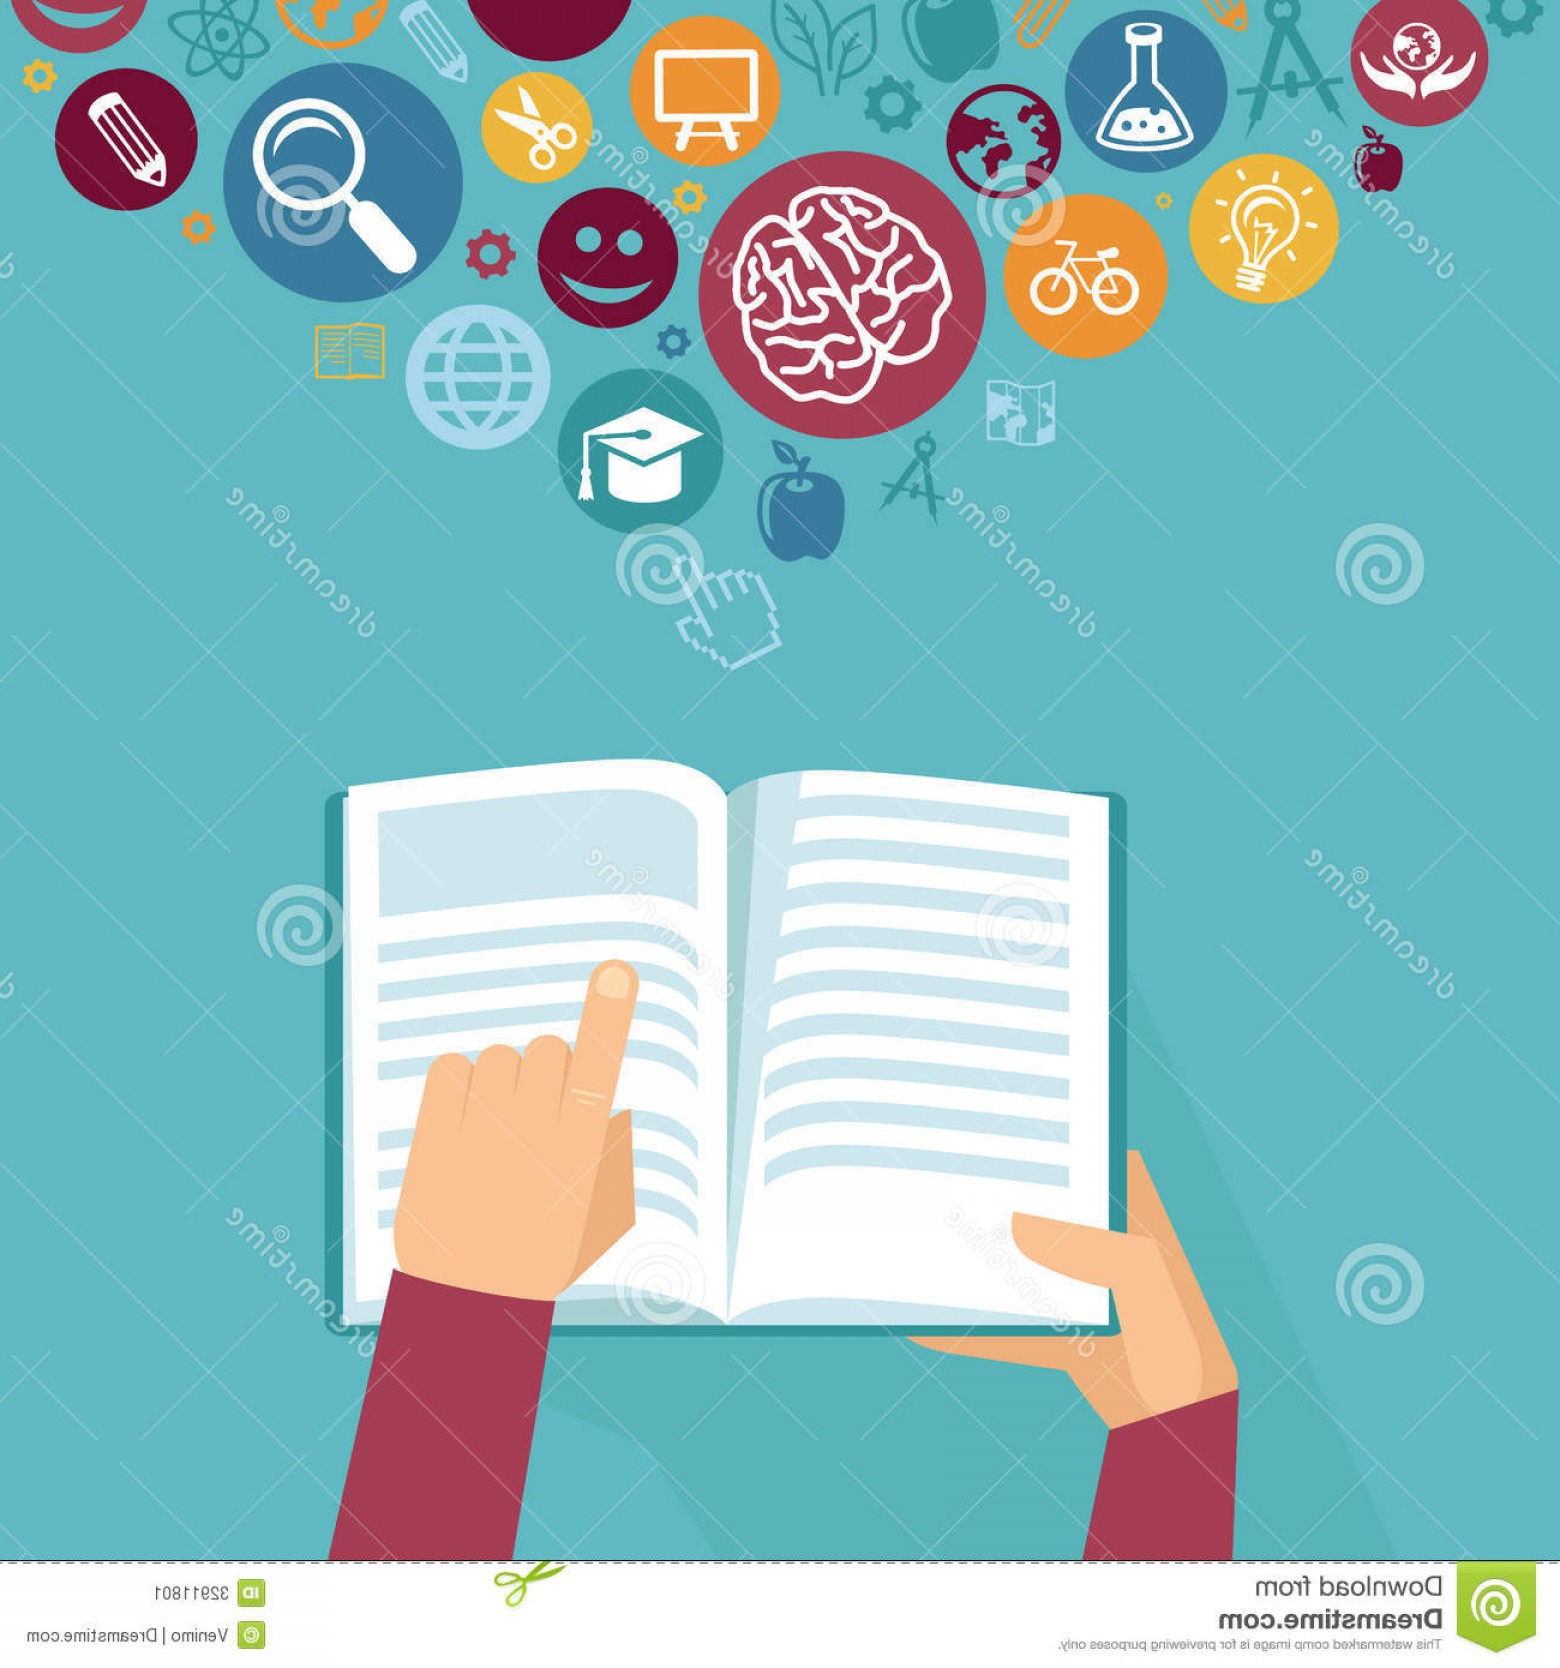 Open Book Vector Flat: Stock Image Vector Education Concept Hands Holding Book Icons Flat Retro Style Image